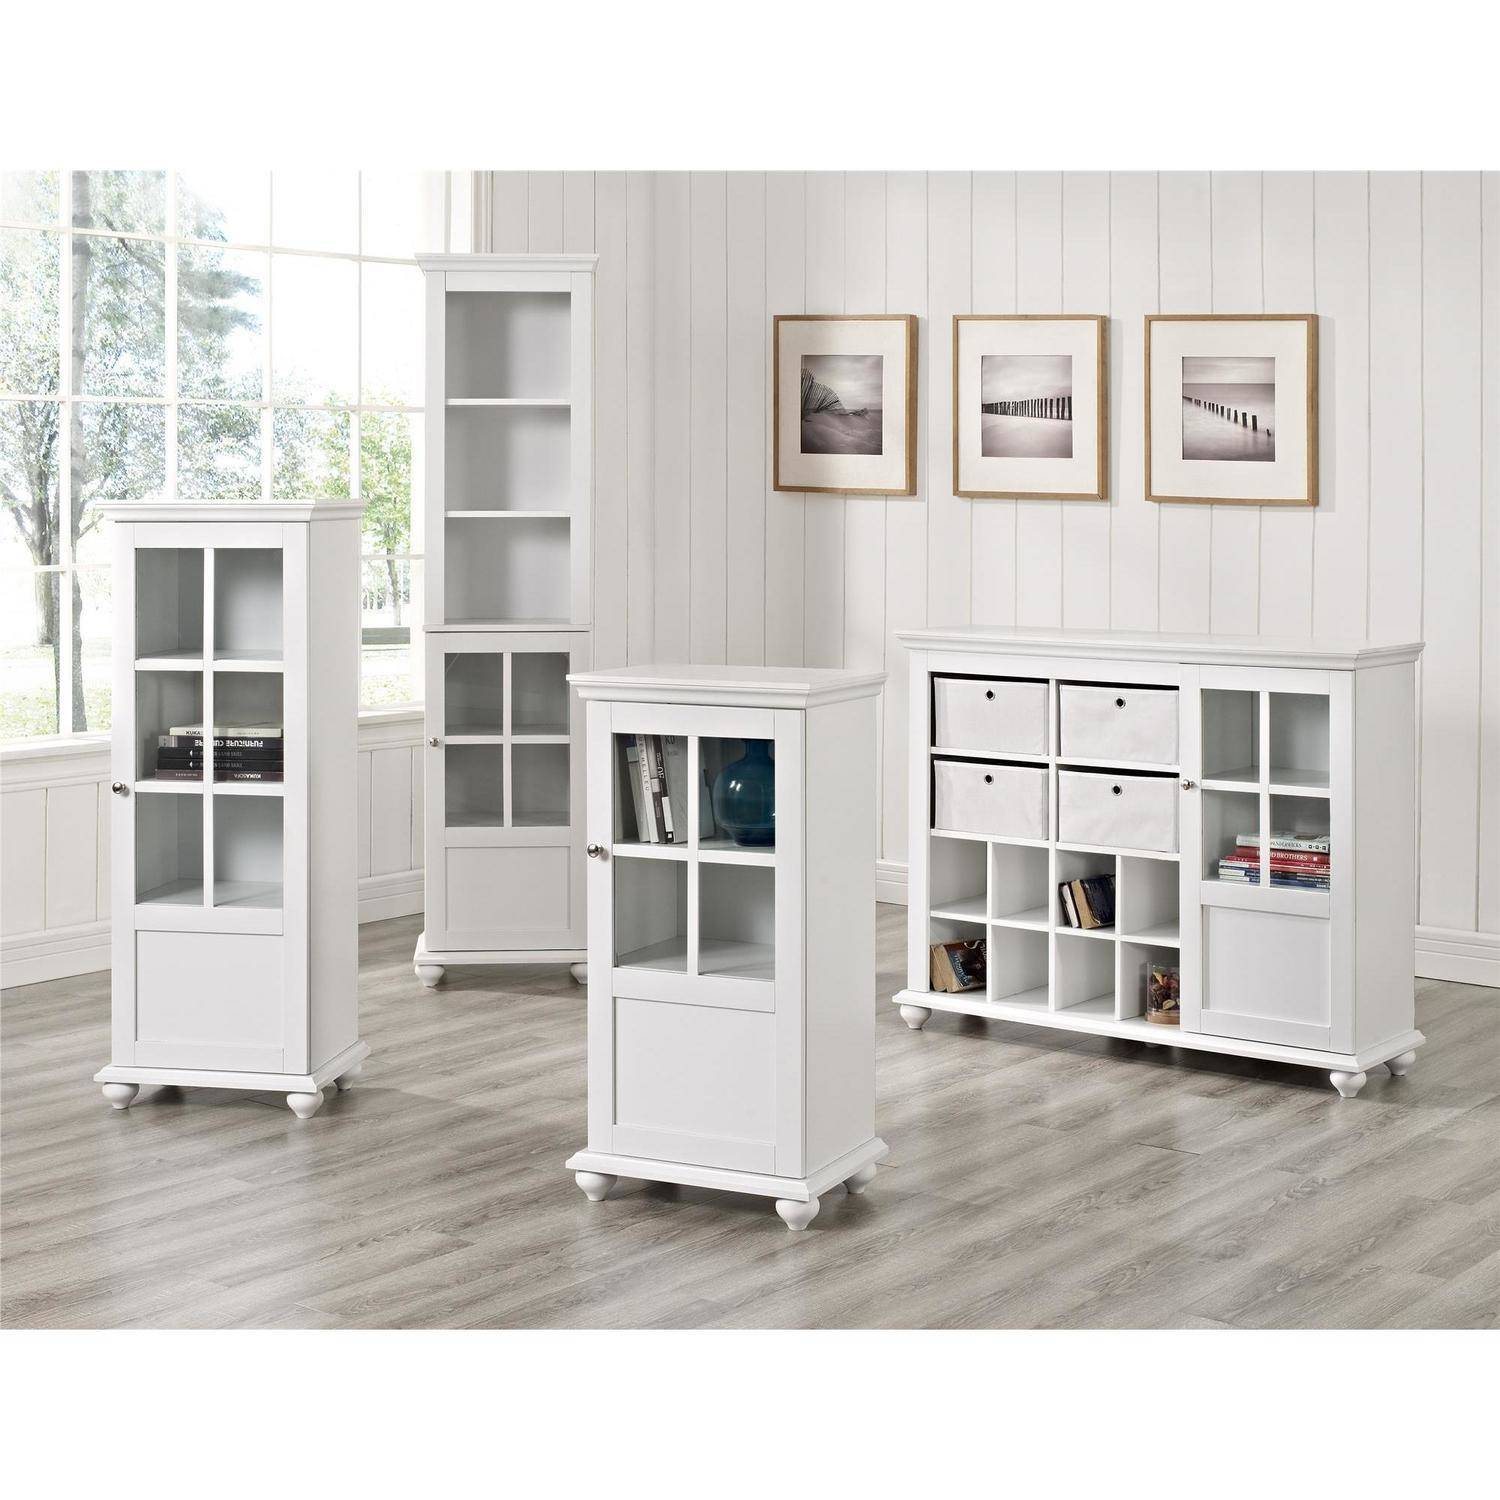 Altra Furniture Reese Park Storage Cabinet With 4 Fabric Bins And Glass  Door, White Part 57